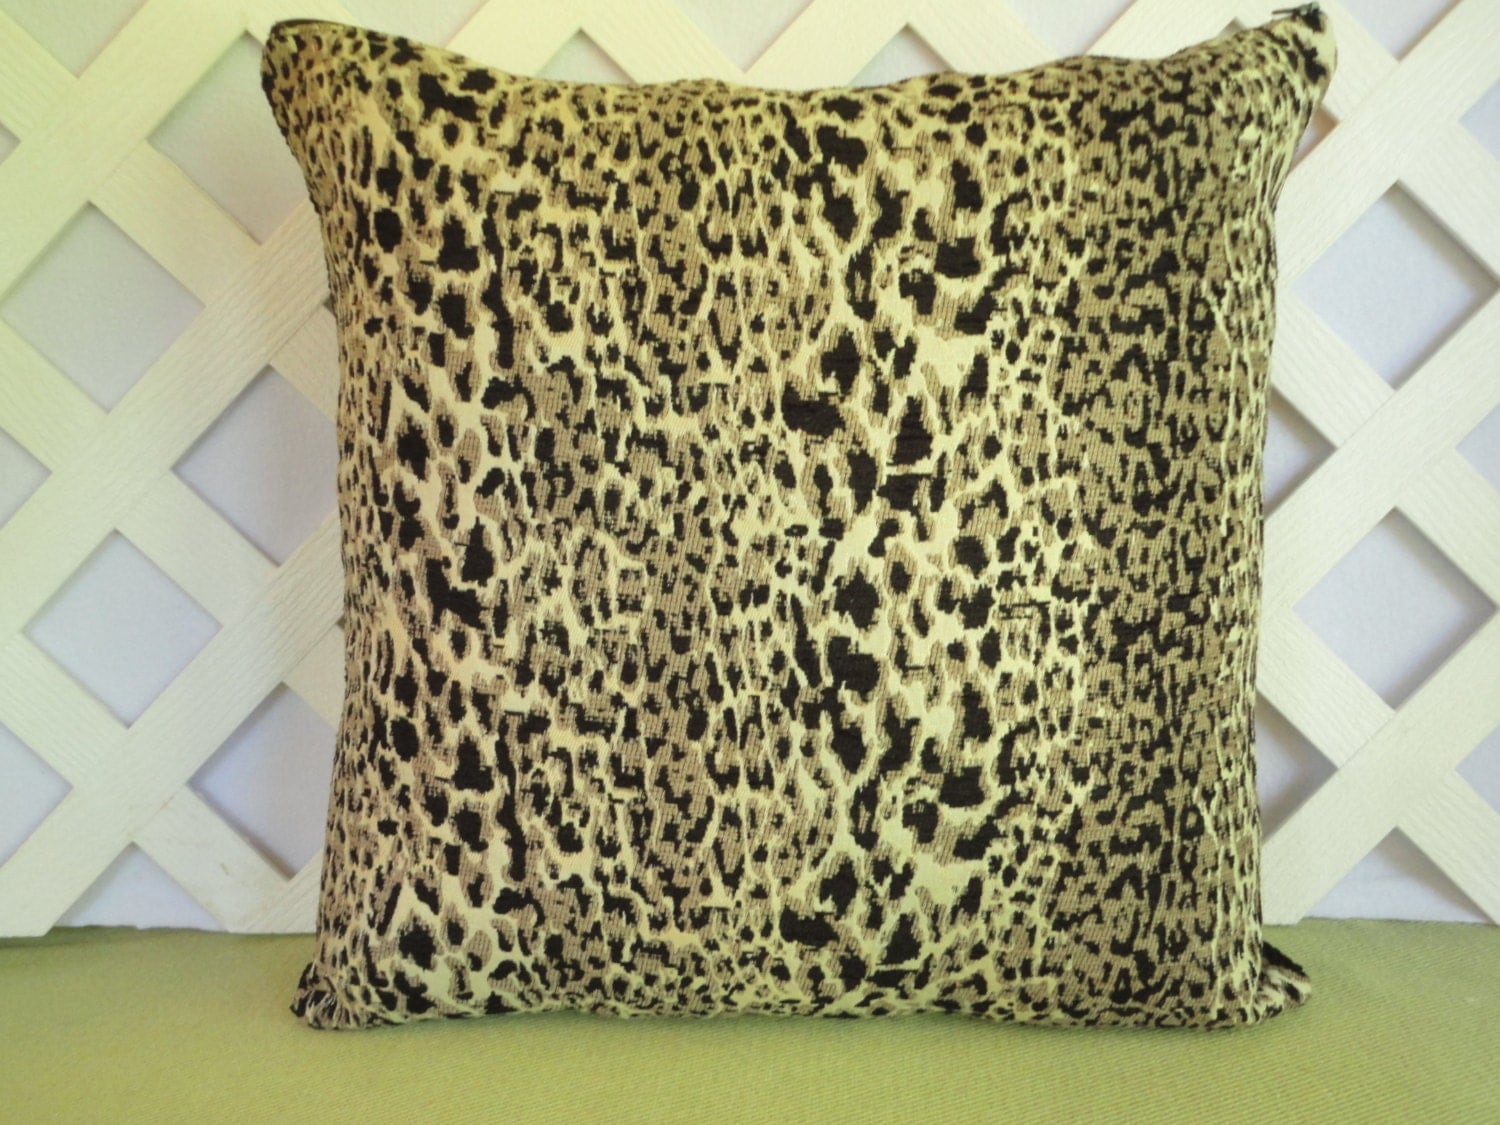 Animal Pillow Prints : Leopard Print Pillow Cover/ Animal Print Pillow Cover/ Tan